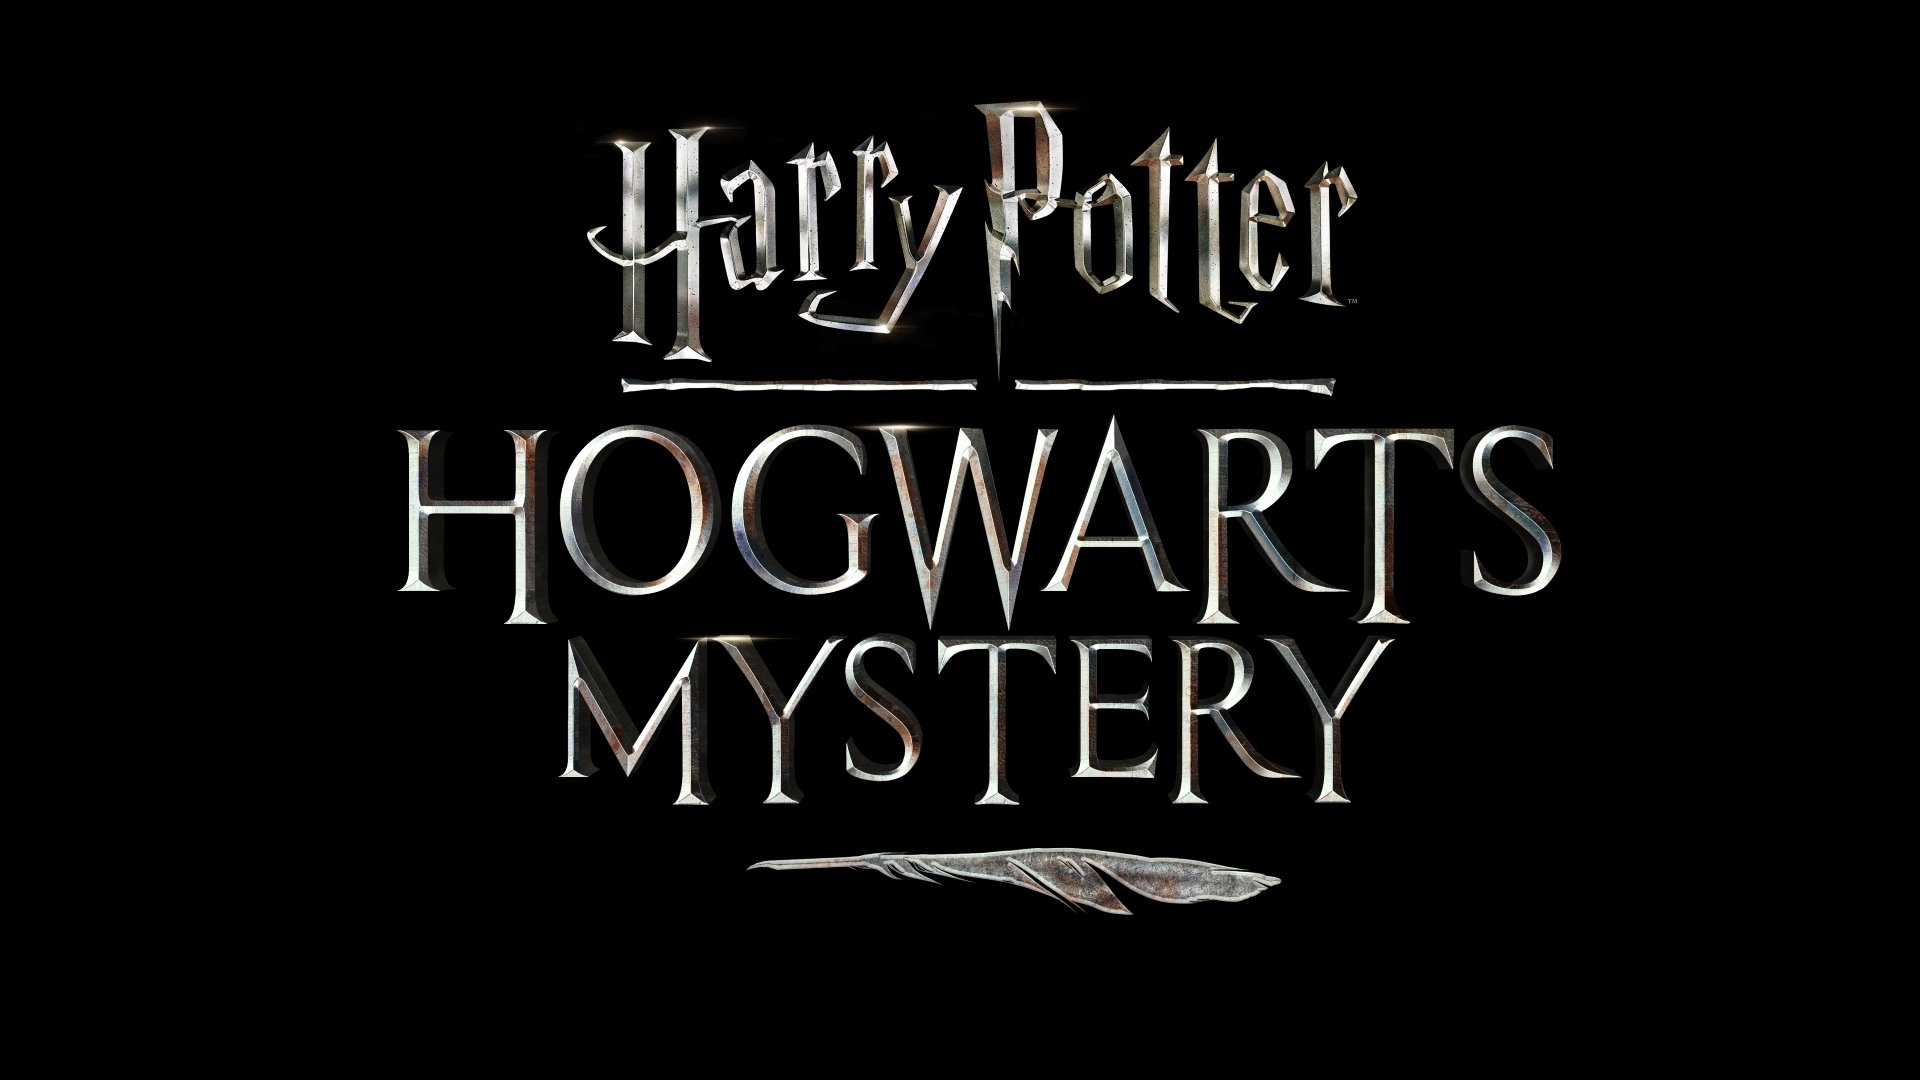 Harry Potter Hogwarts Mystery Arrives On Mobile It Will Be An Rpg